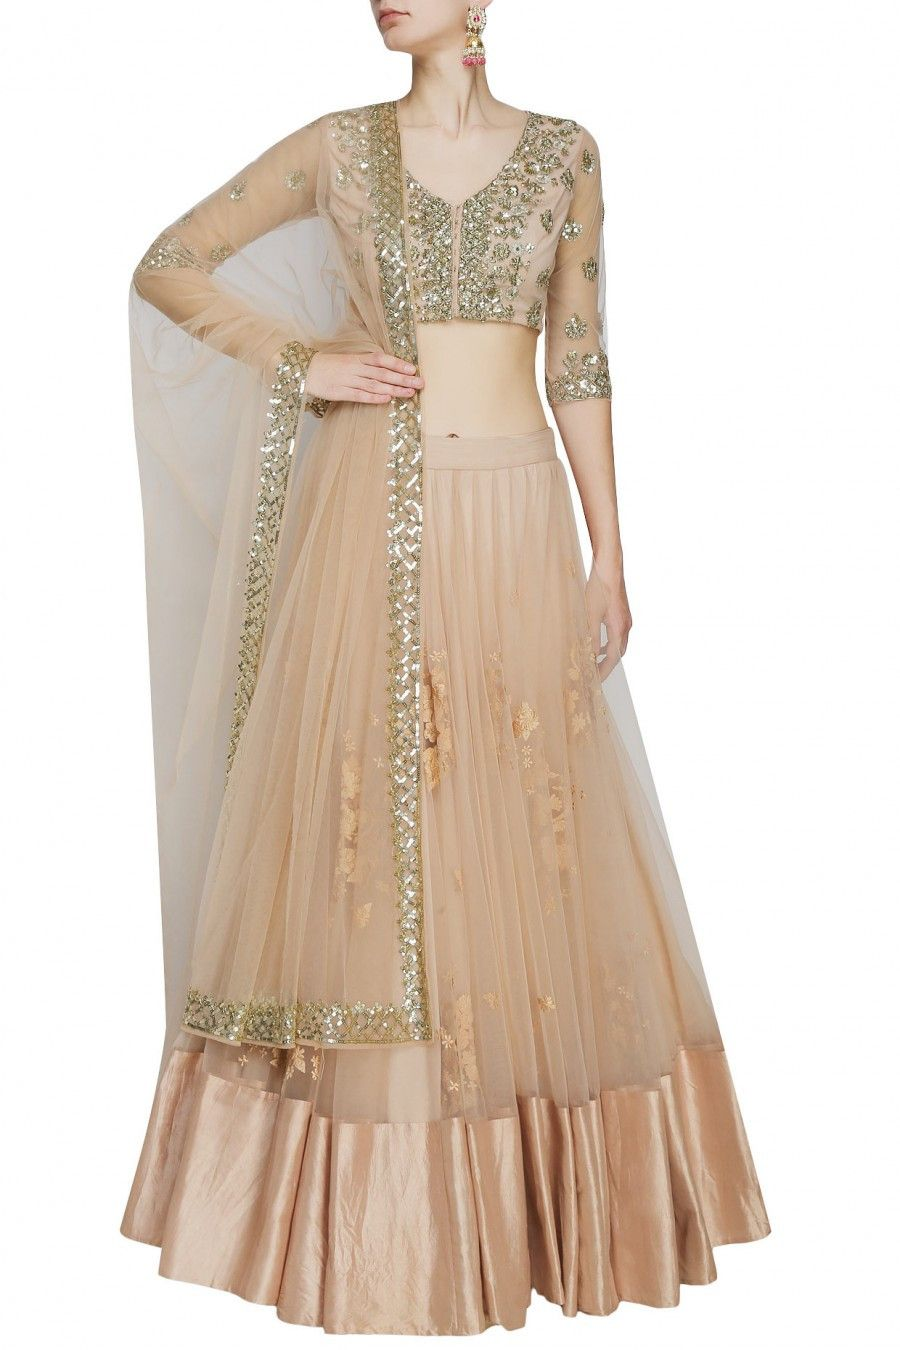 Peach lehenga with gold embroidery blouse | crop top and ...